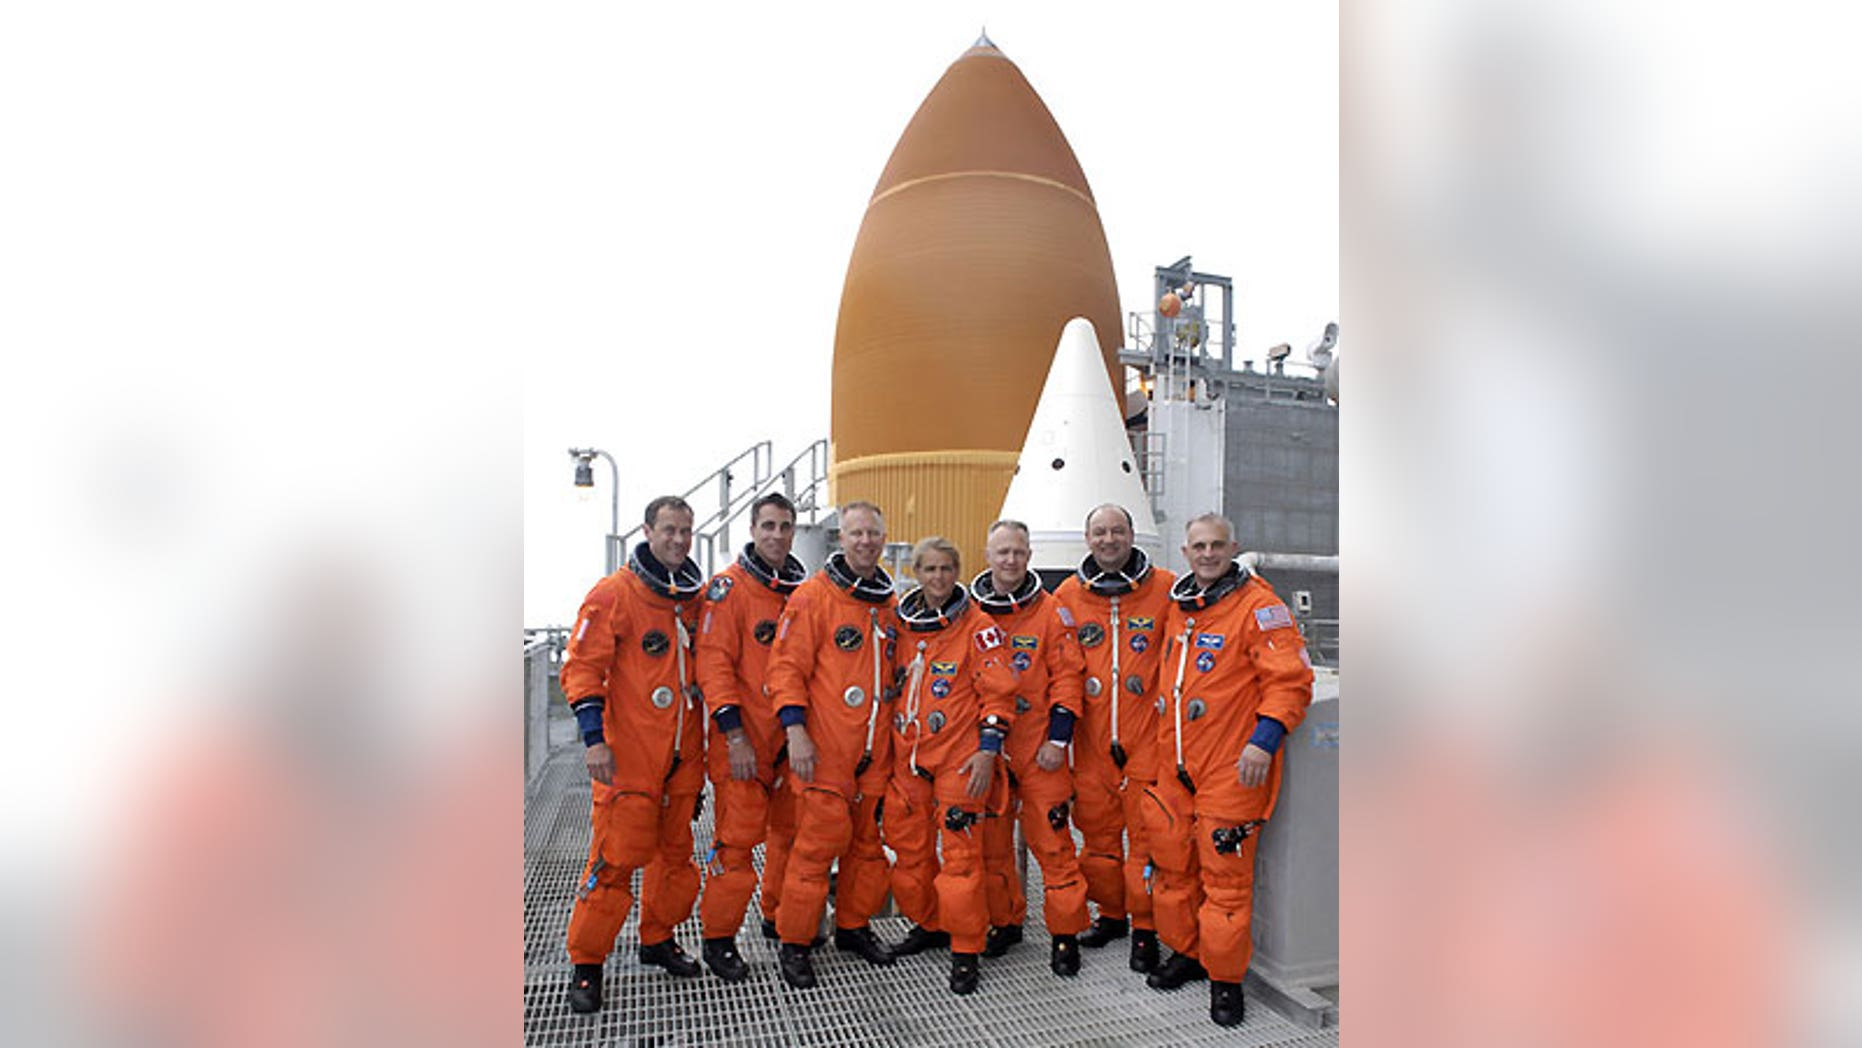 The STS-127 pose next to the top of Endeavour's orange fuel tank and twin solid-fuel rocket boosters.